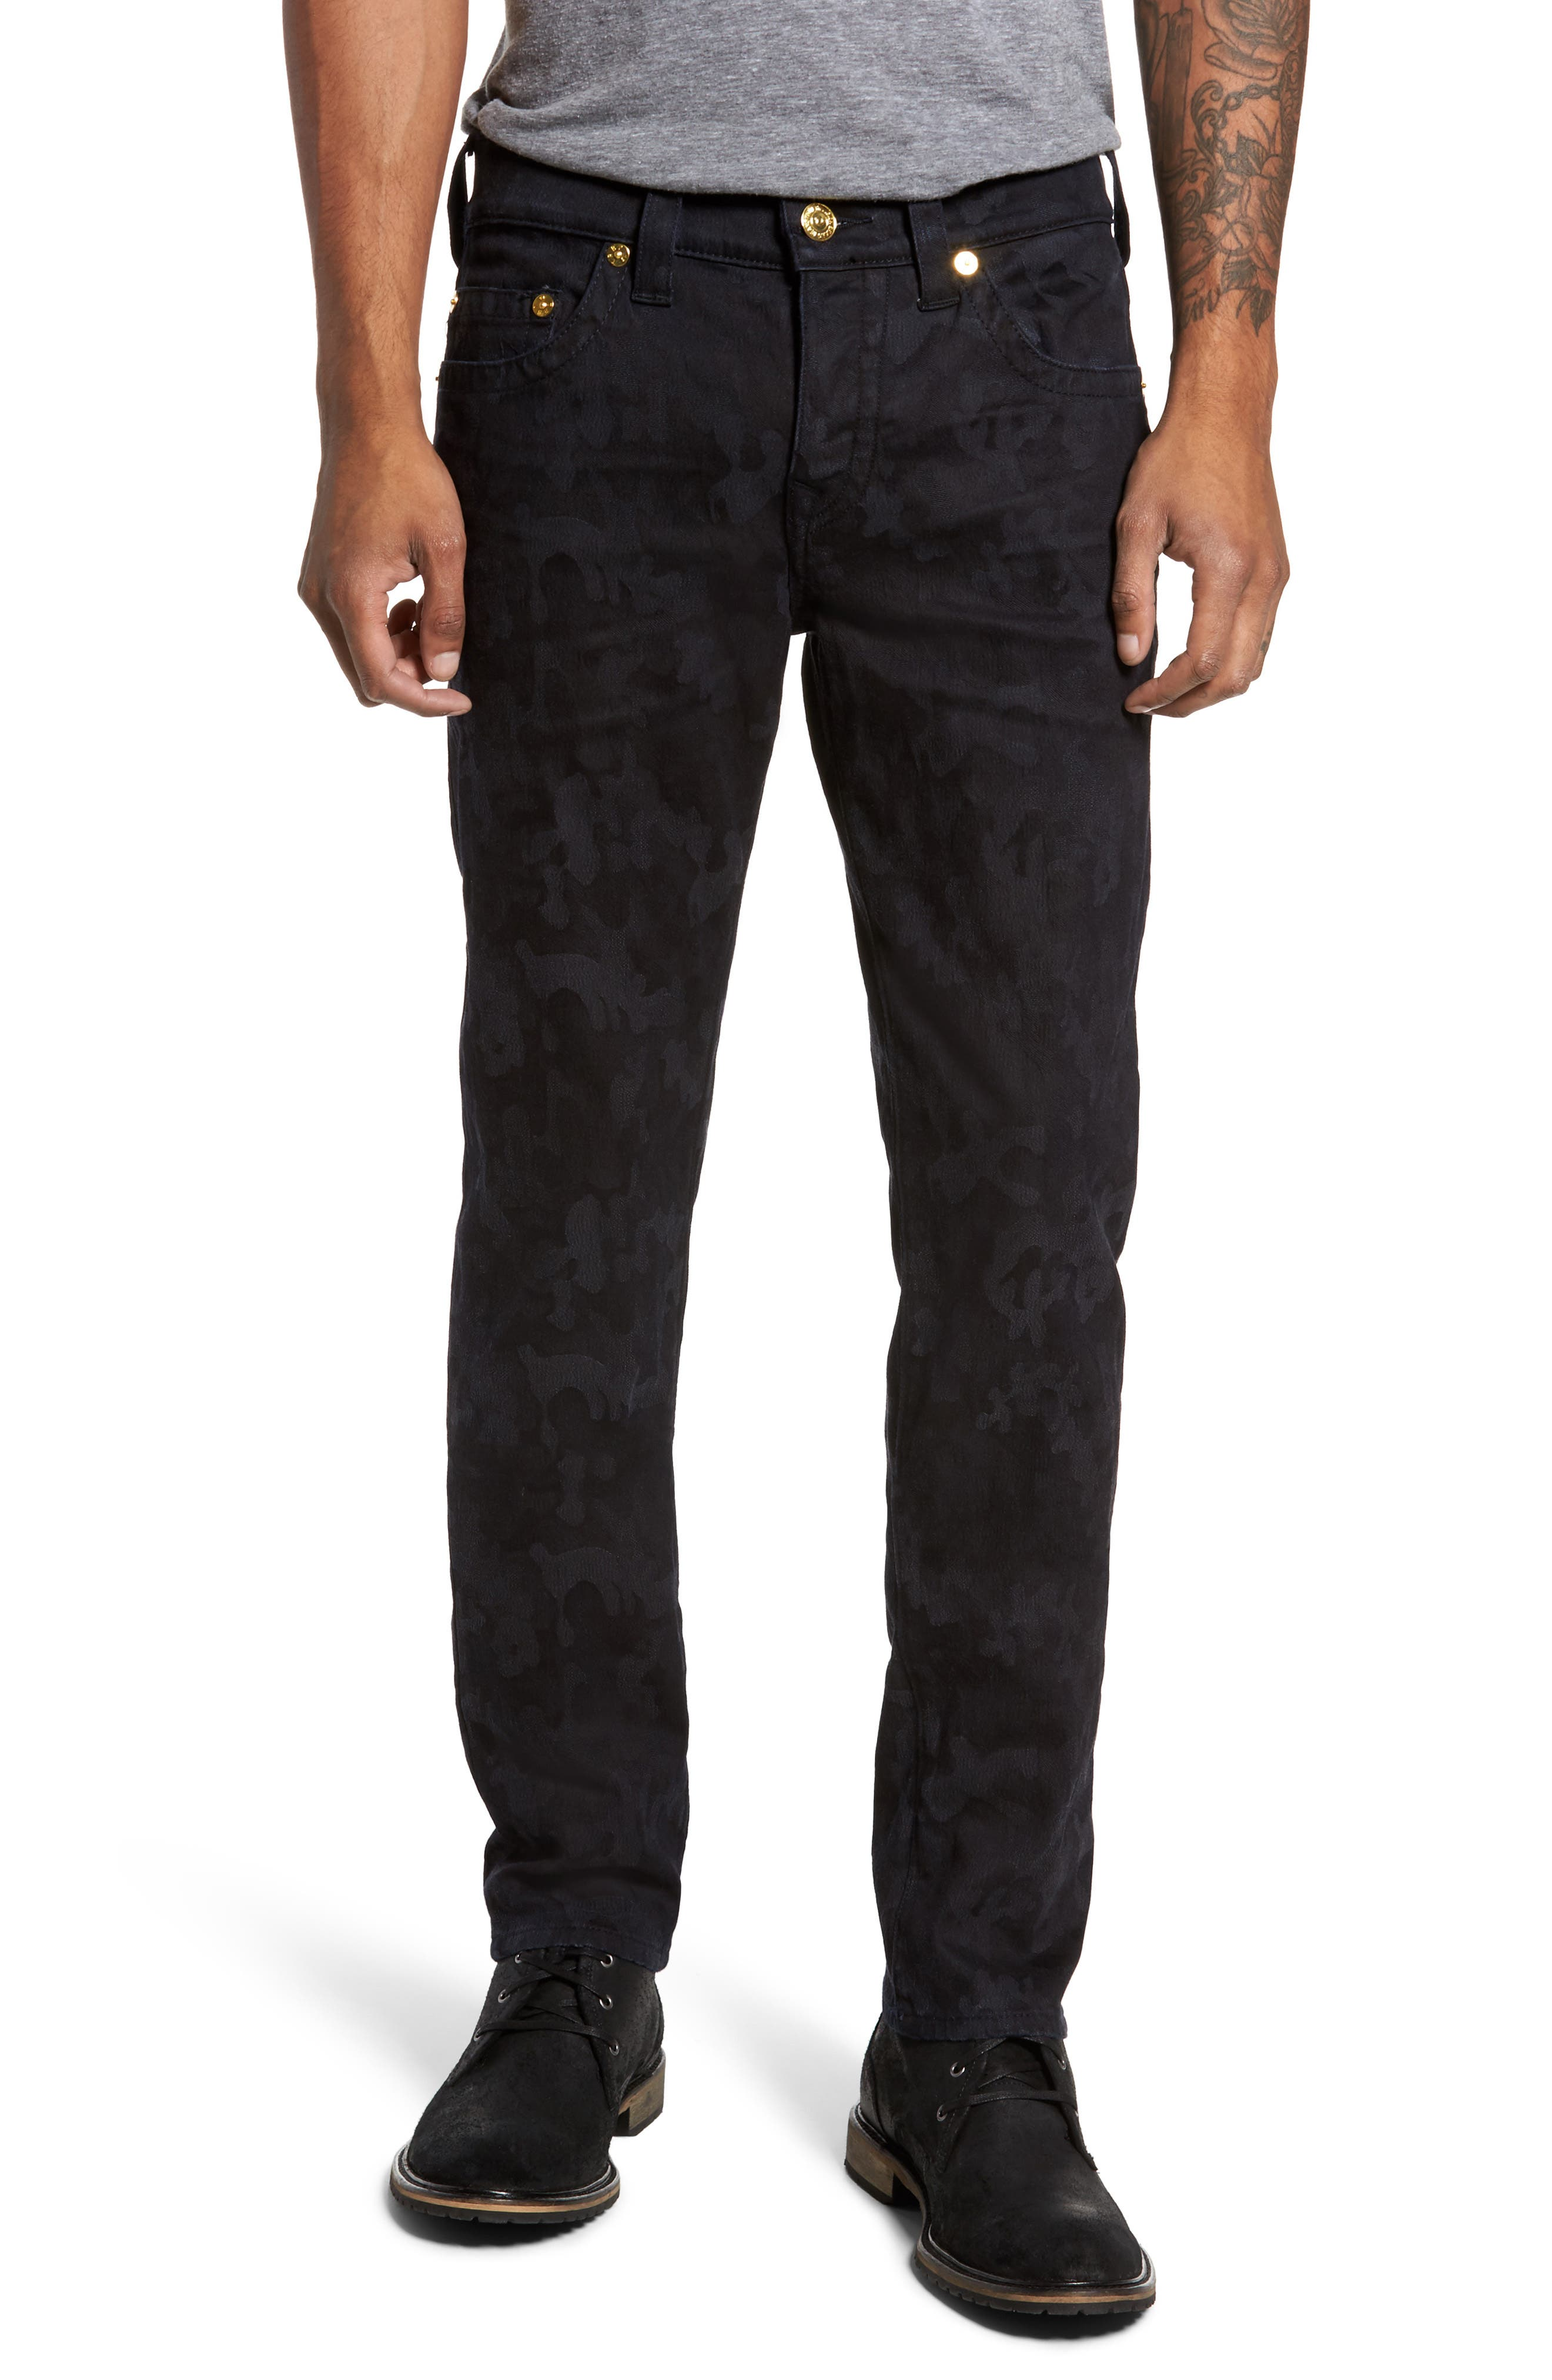 Alternate Image 1 Selected - True Religion Brand Jeans Rocco Skinny Fit Jeans (Midnight Camo)